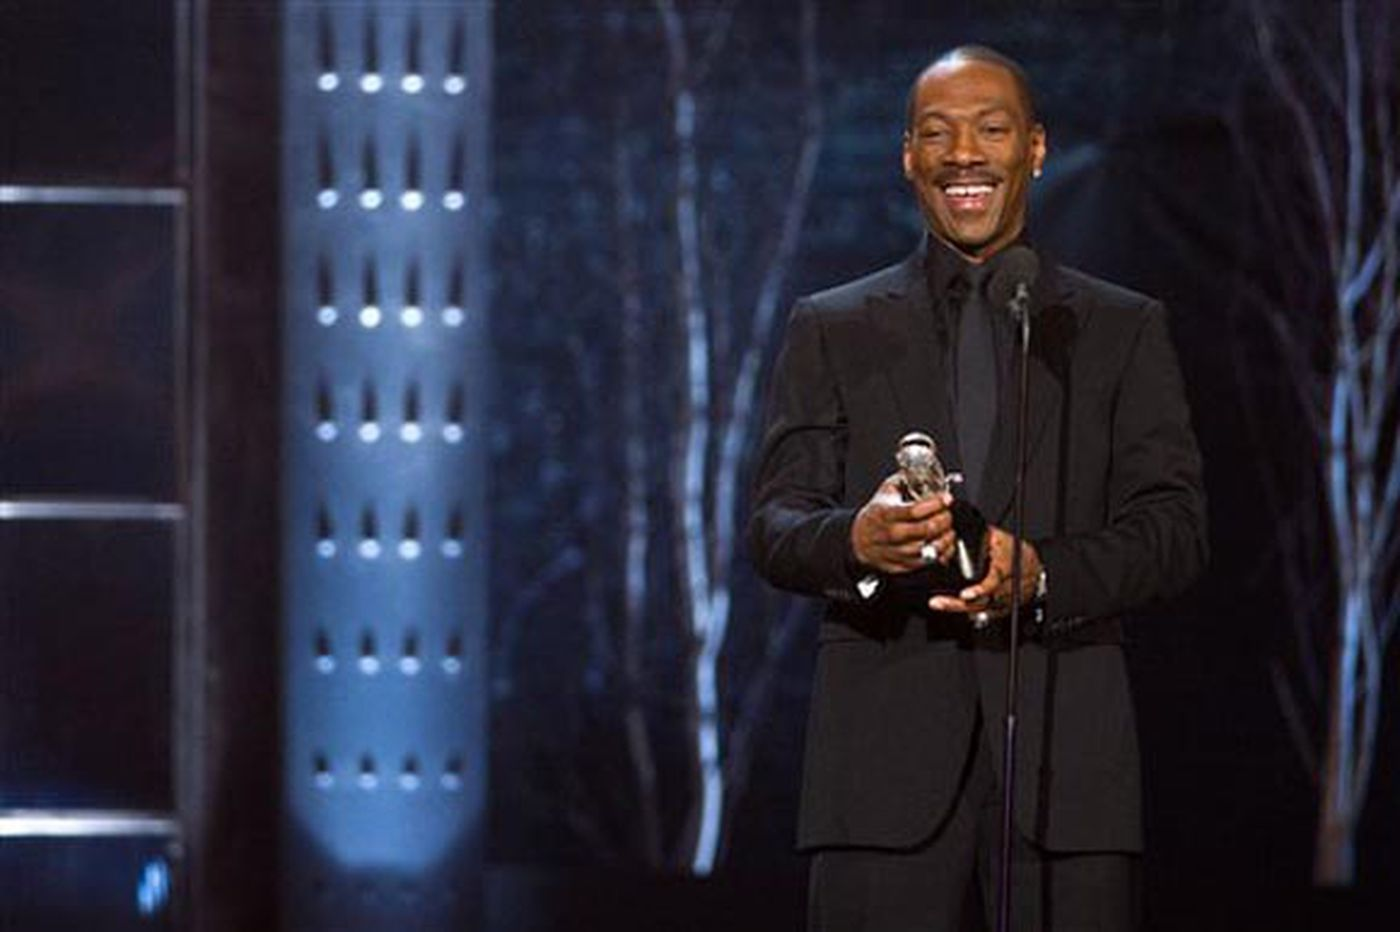 Eddie Murphy will return to 'Saturday Night Live' for the first time in 35 years